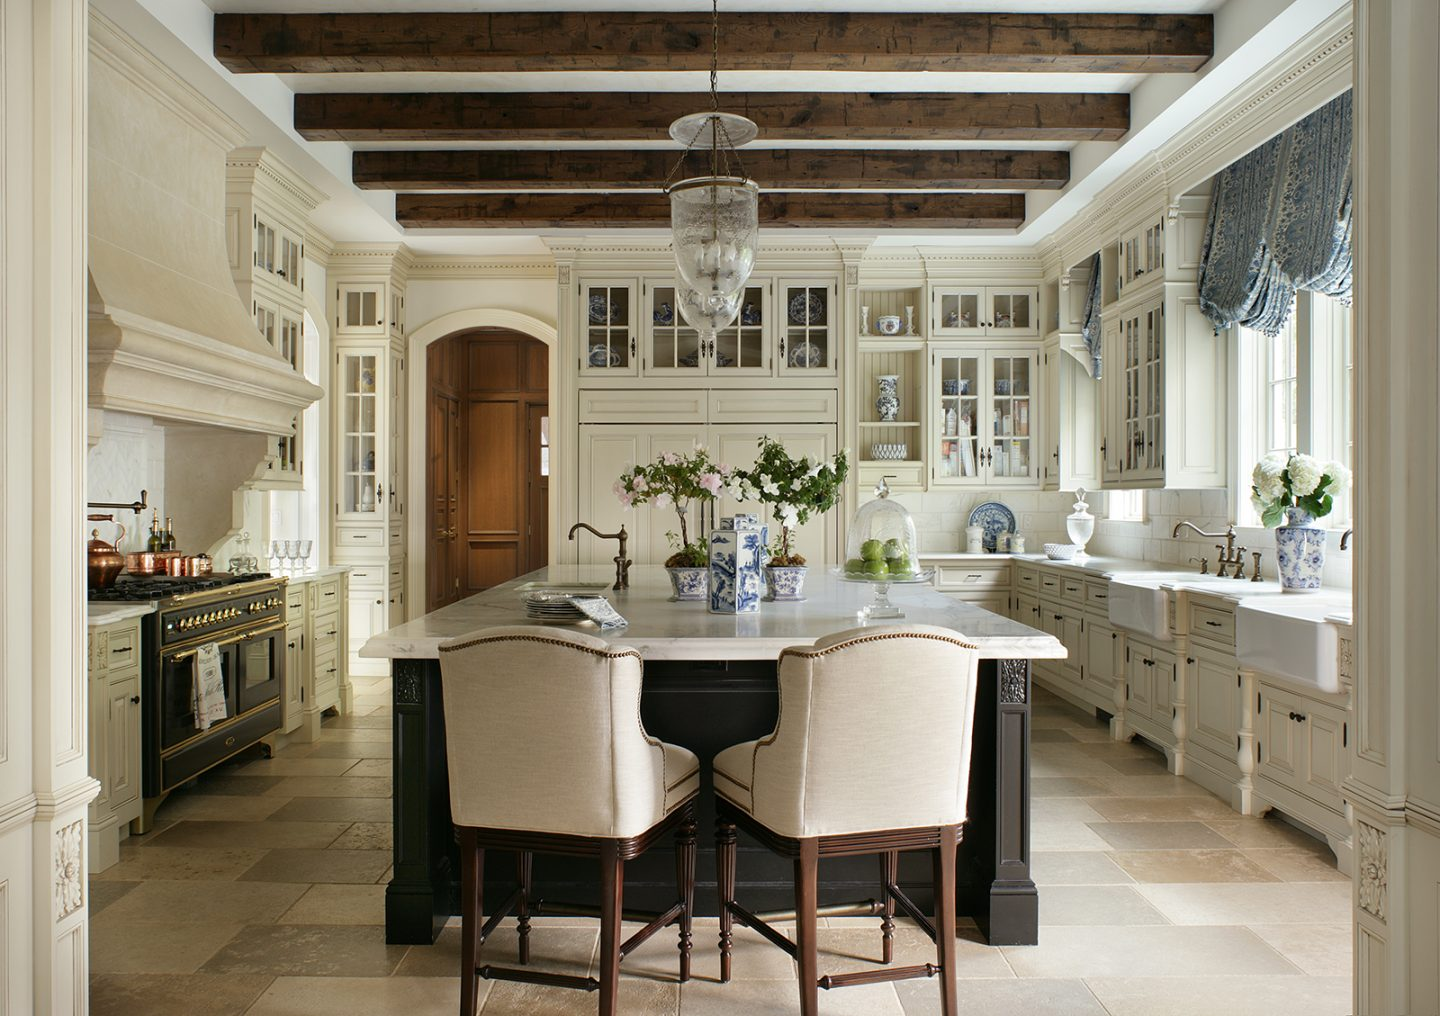 Luxurious blue and white French country kitchen with wood beams, two farm sinks, and island. The Enchanted Home.